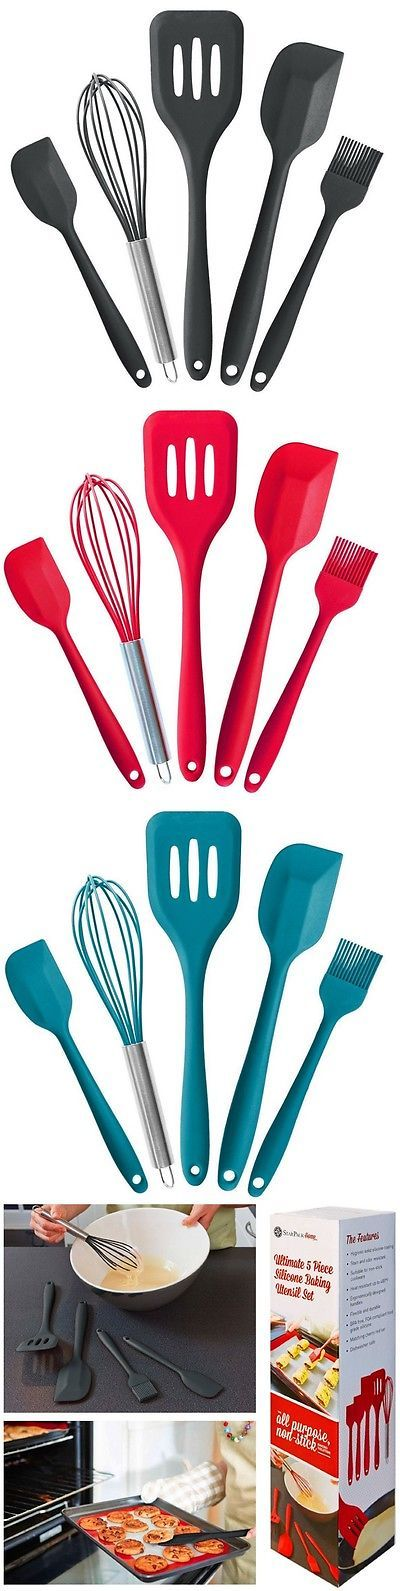 Running Belts 179802: 5 Pcs Premium Silicone Kitchen Utensil Set Hygienic Solid Coating Bpa Free Tools BUY IT NOW ONLY: $33.99